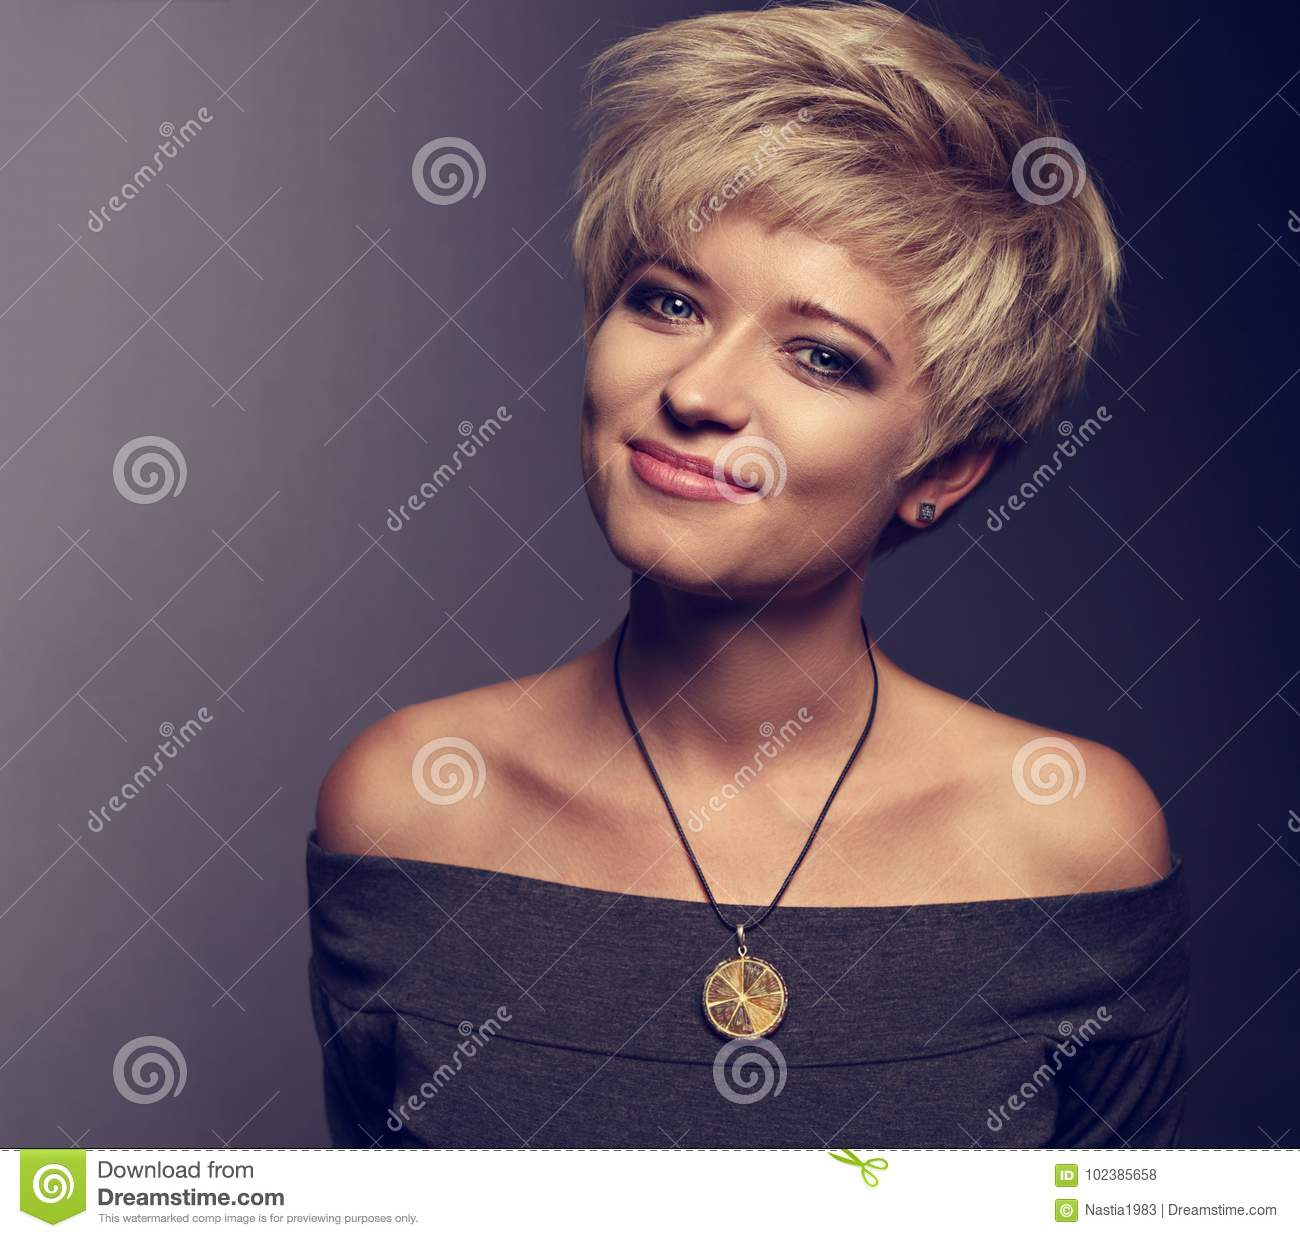 Happy smiling woman with short blond bob hairstyle in grey blous